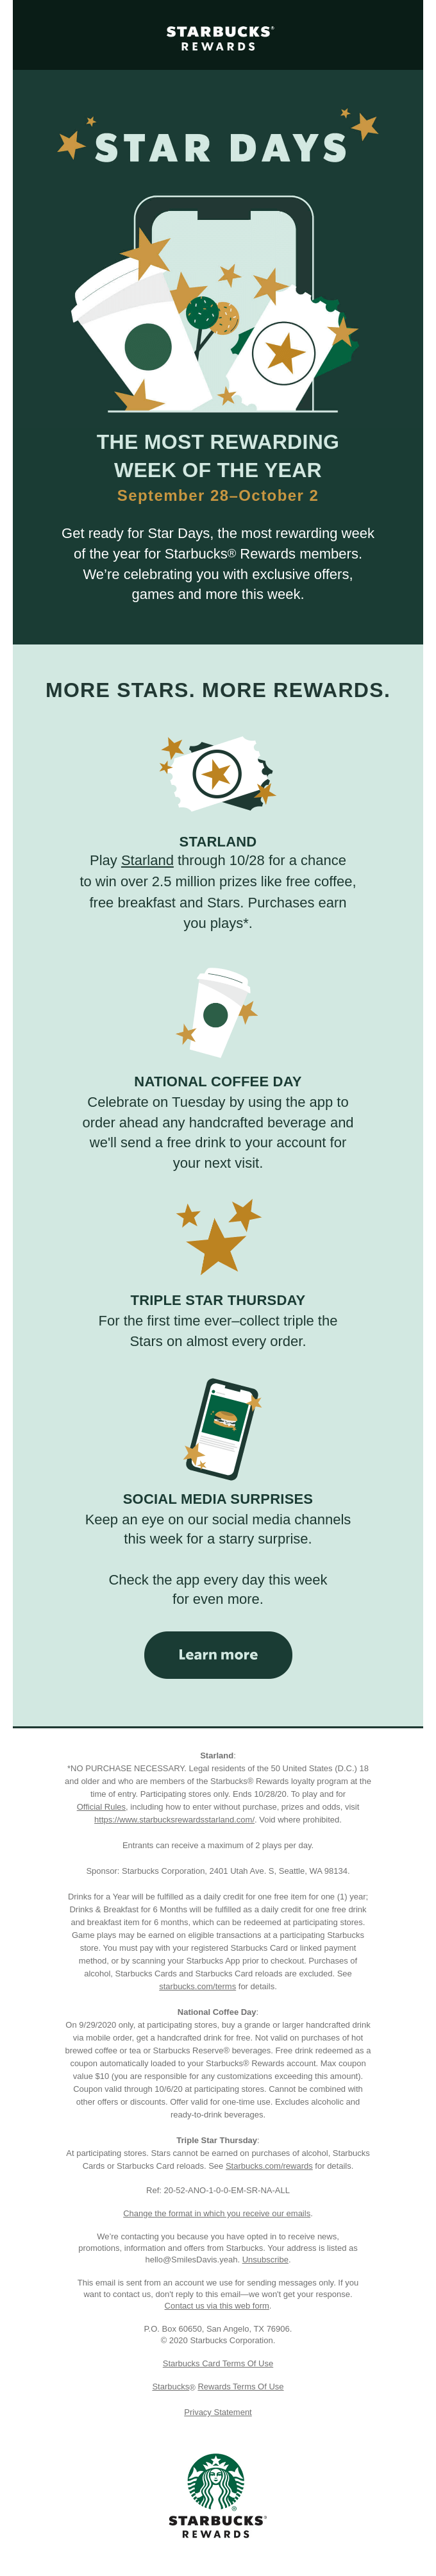 Mark your calendars for Star Days